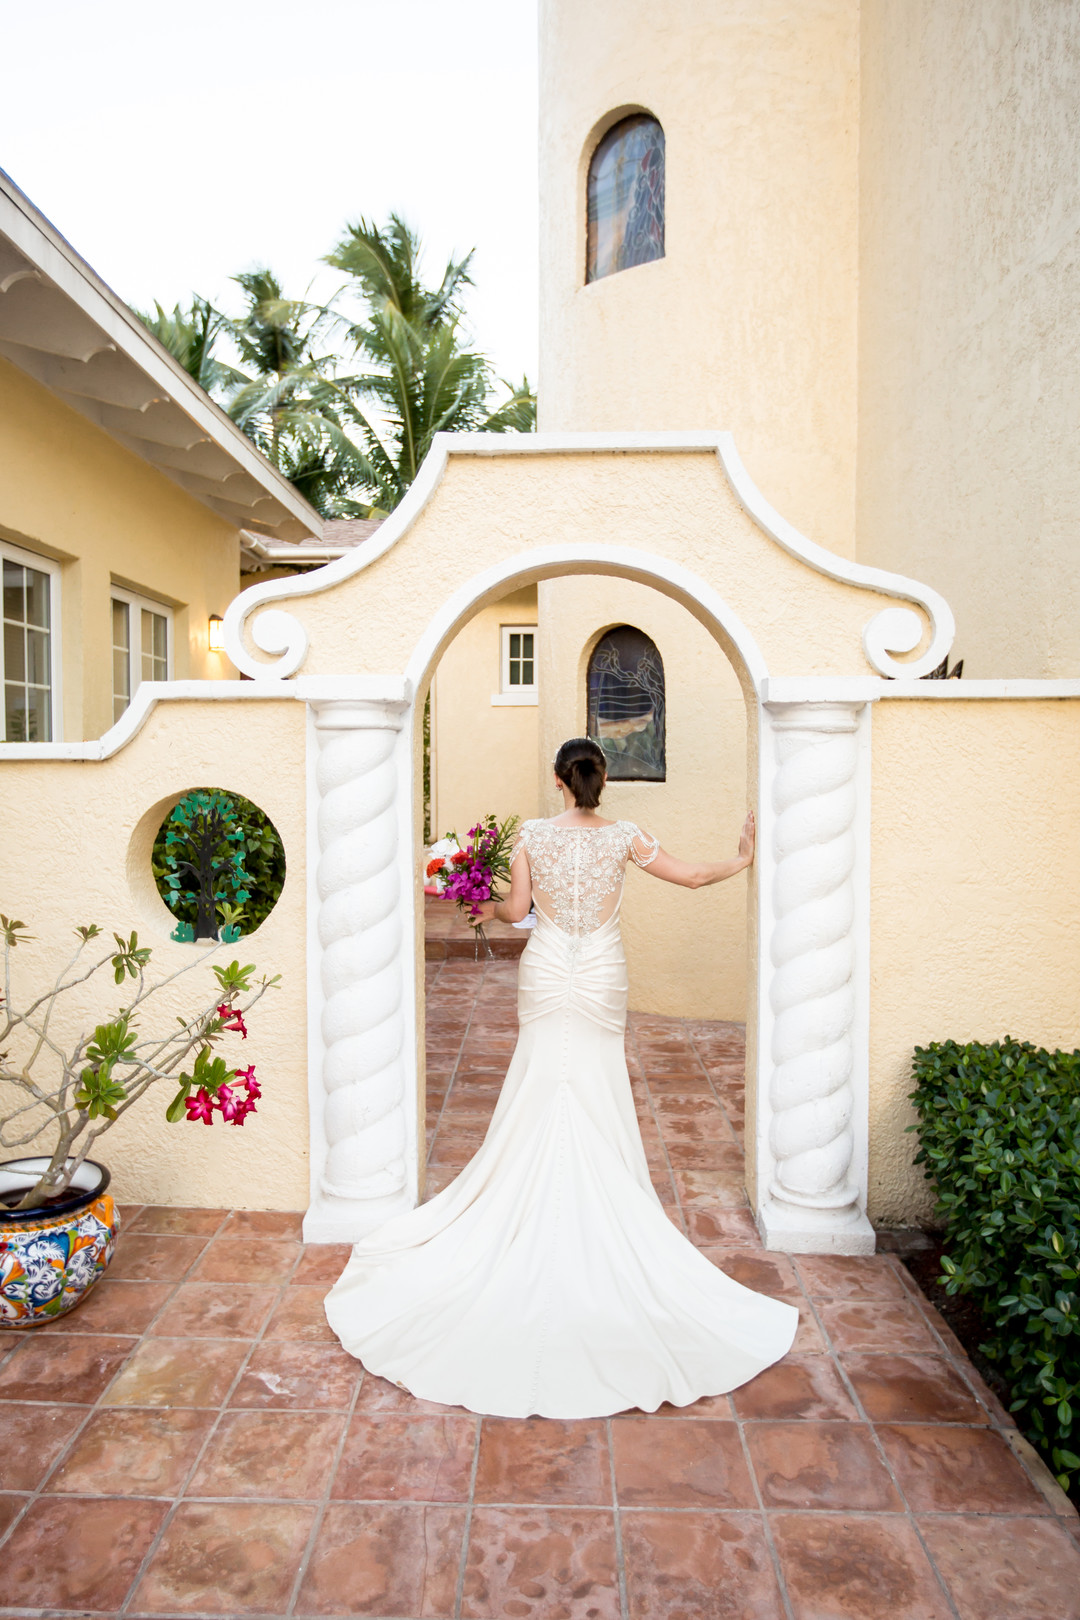 Paradise Island Vow Renewal In Beautiful Bahamas, Photography by BellaFoto Studios for Destination Wedding Blog Adriana Weddings